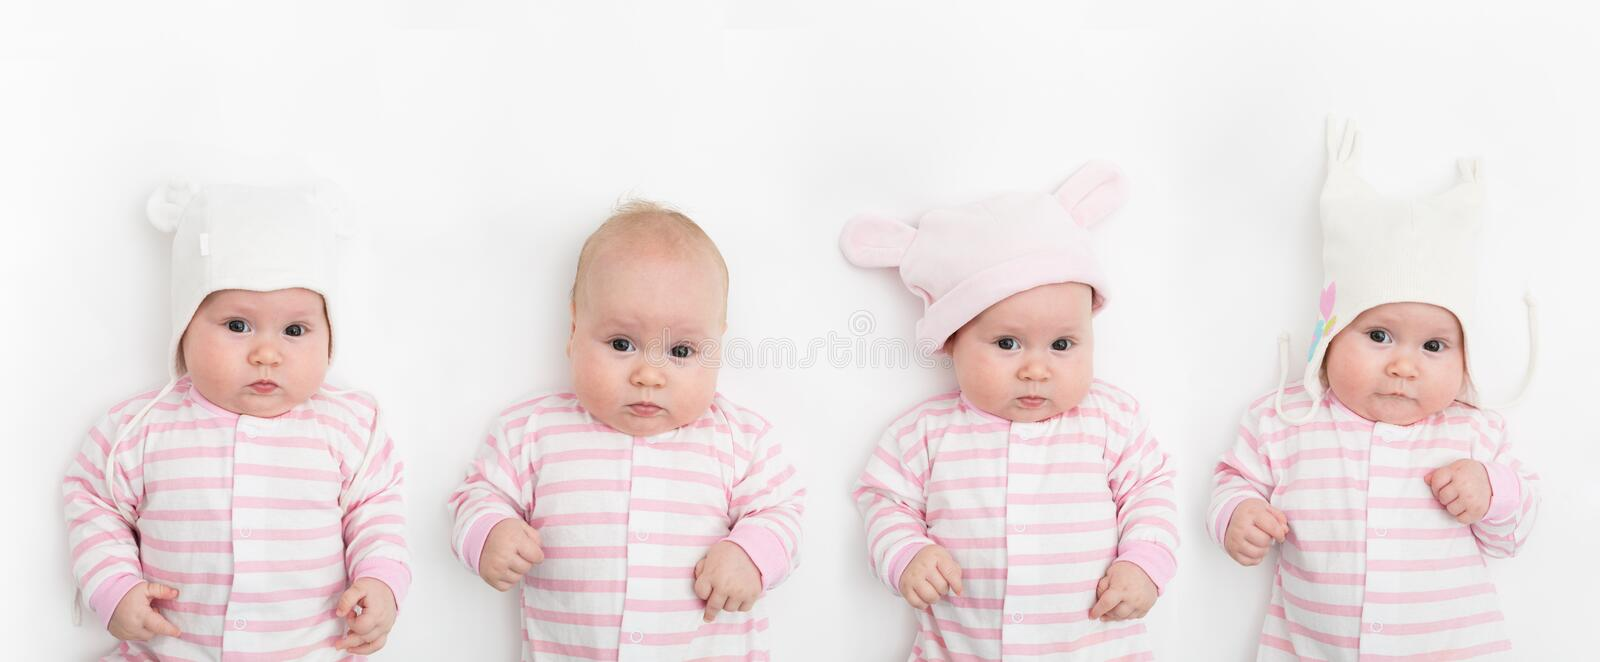 Cute adorable baby child with different warm white and pink hats. Happy baby girl on white background and looking at the royalty free stock photos